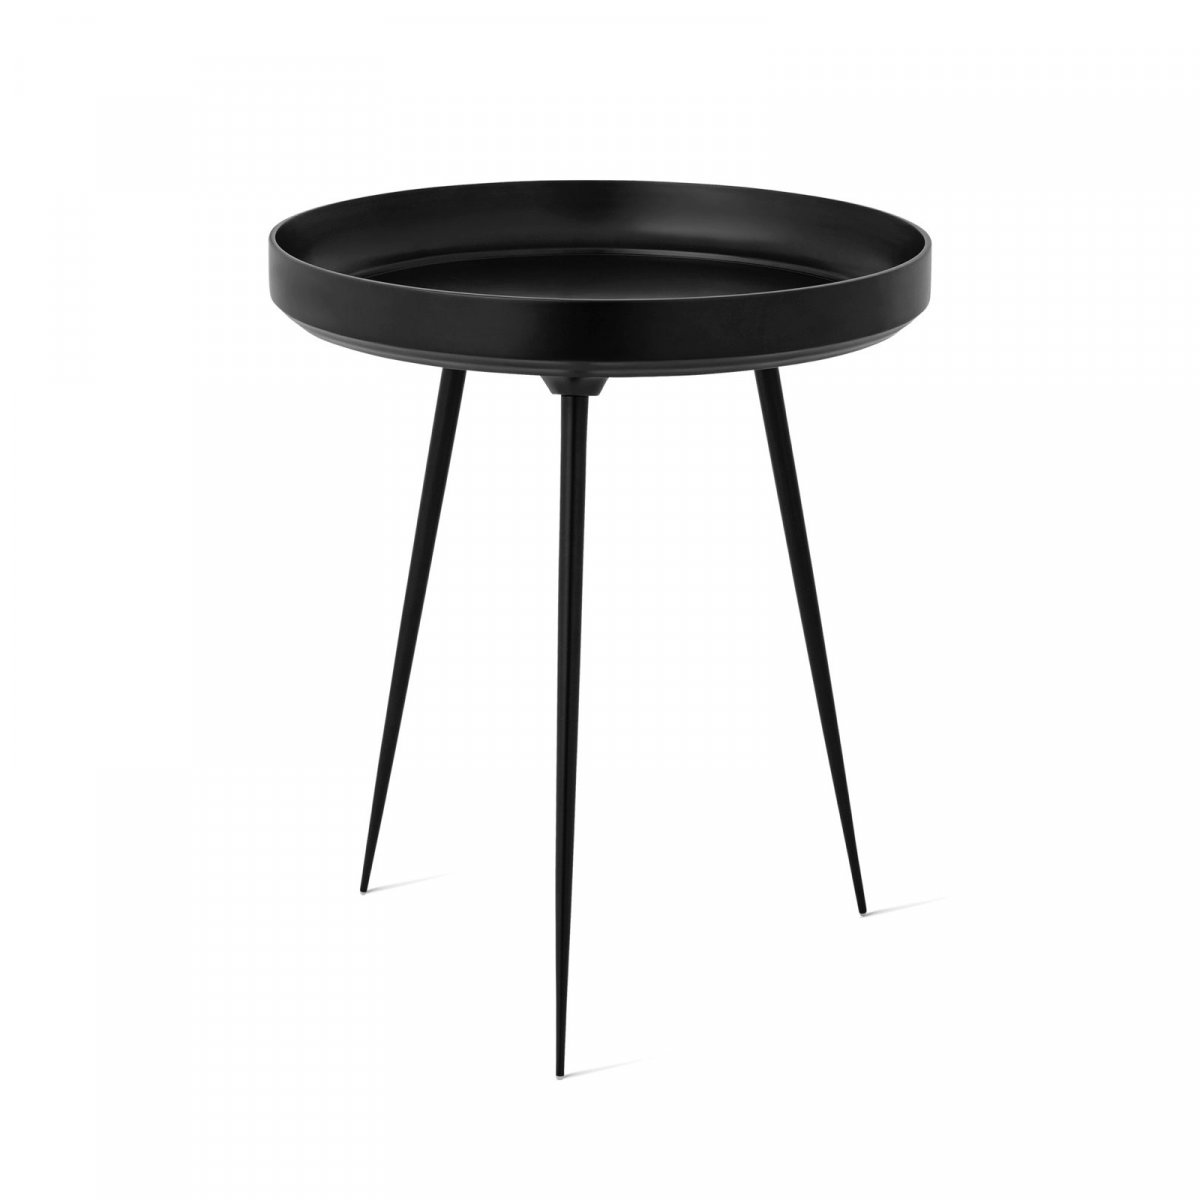 Alu Bowl Table, black.